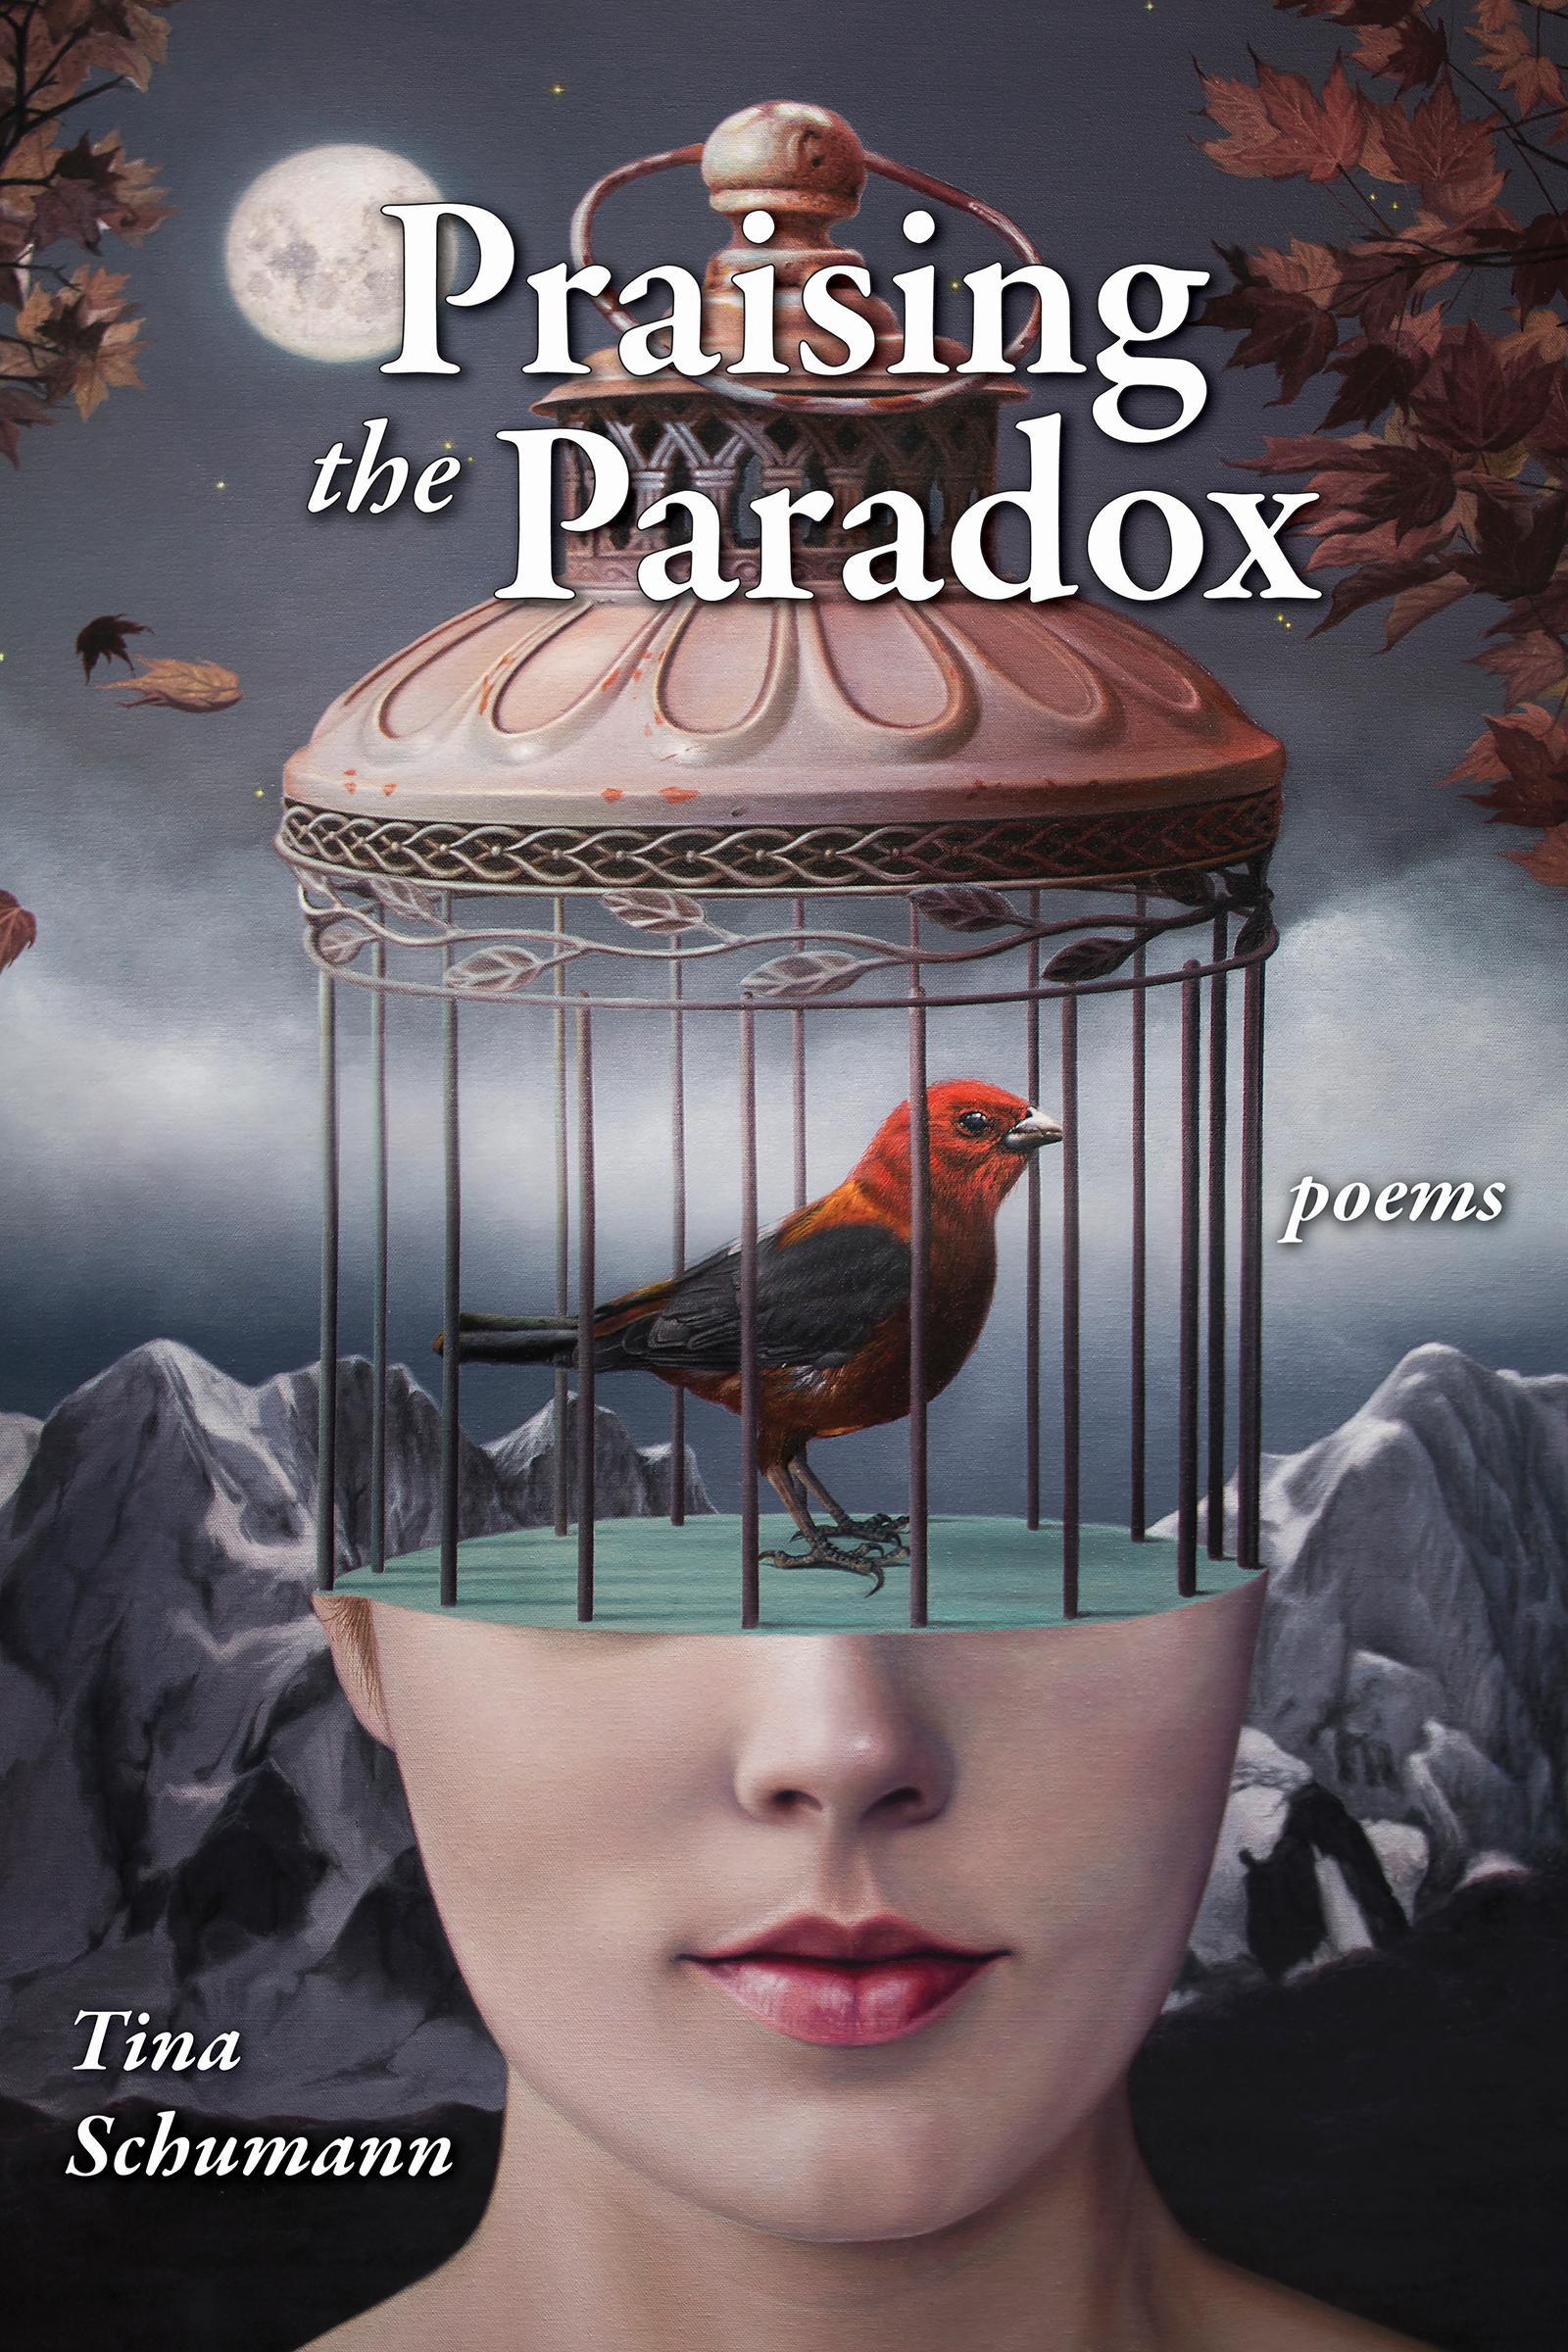 A background design of a full moon and a night sky with mountains covered in snow at the bottom and a woman's face on top with a bird cage that makes up the top half of her face and script that reads Praising the Paradox poems by Tina Schumann.